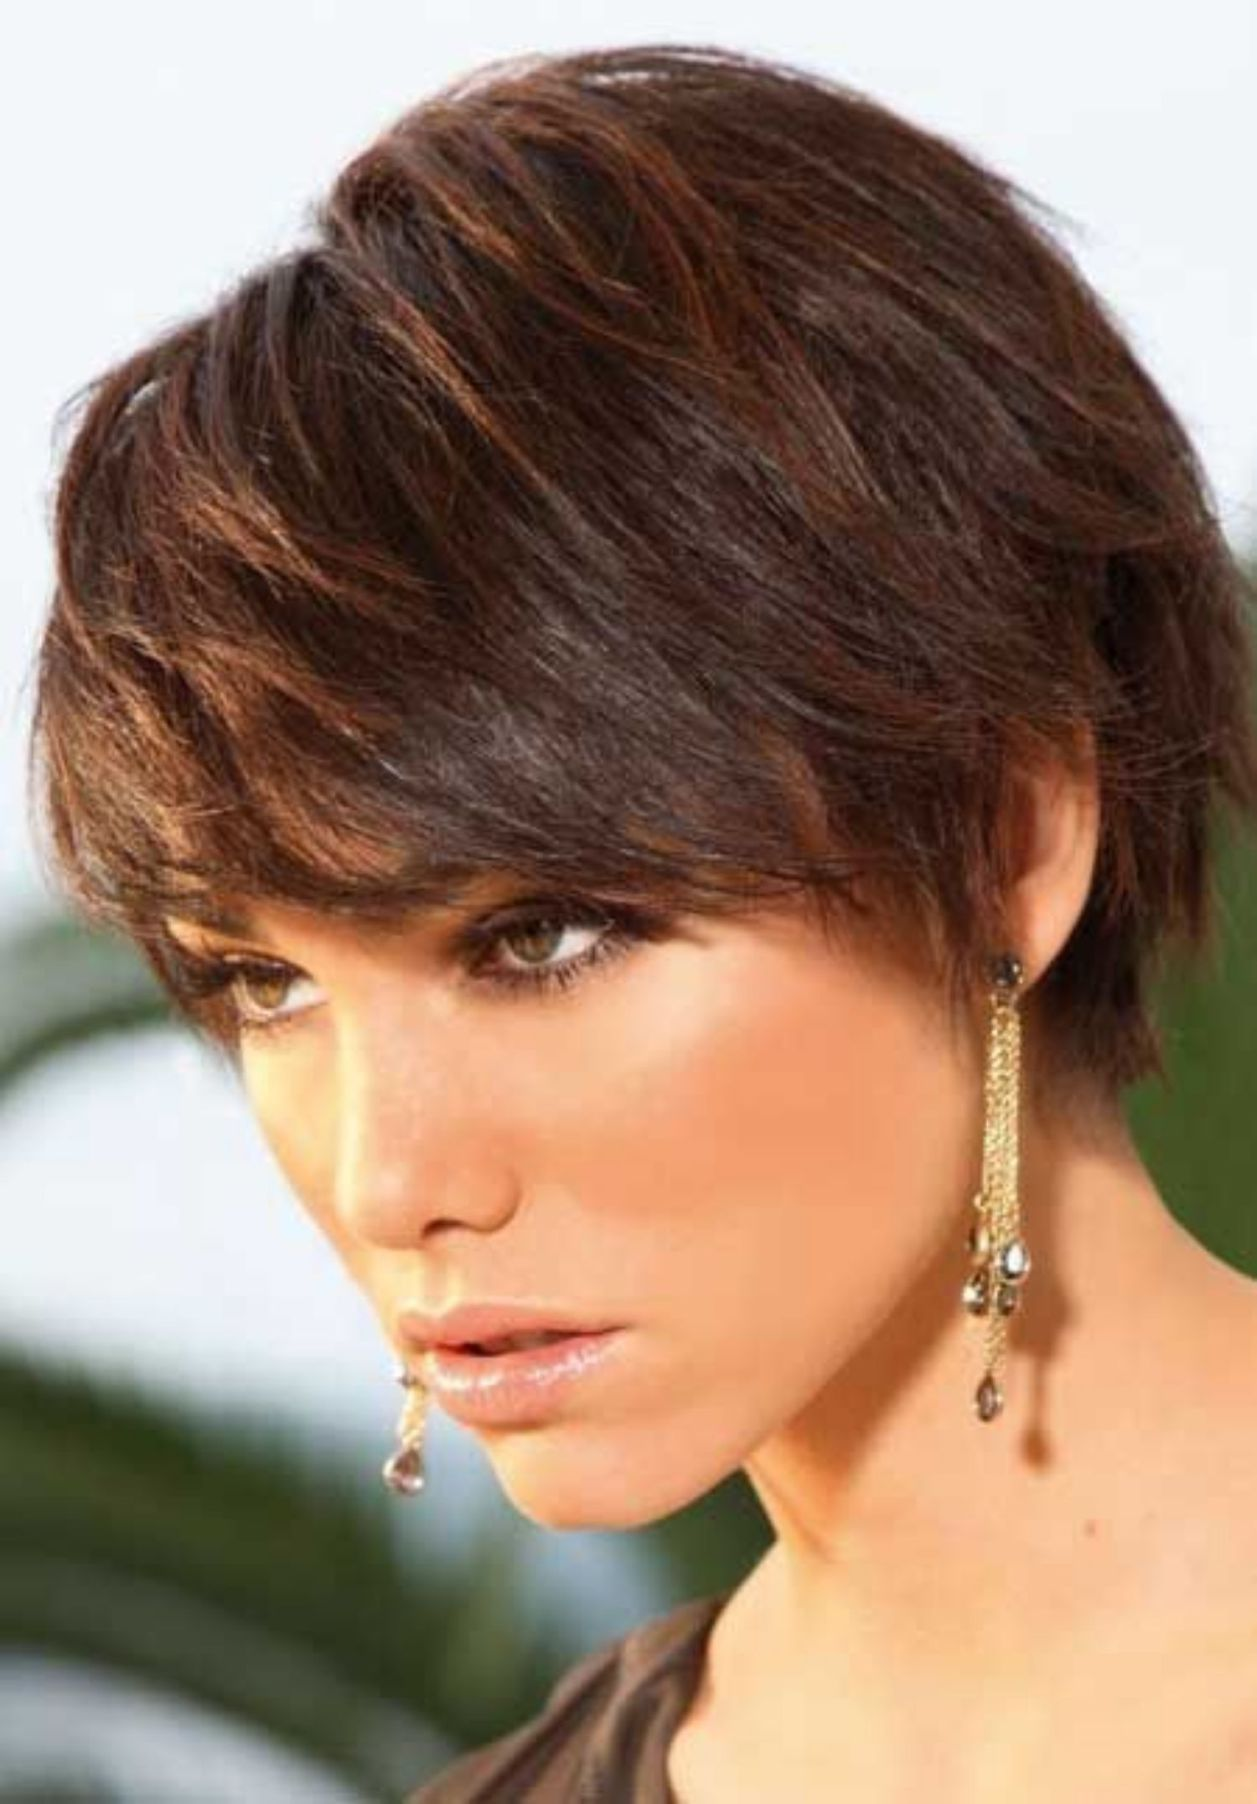 Short Shaggy Hairstyle For Thick Hair Short Hairstyles For Thick Hair Haircut For Thick Hair Thick Hair Styles